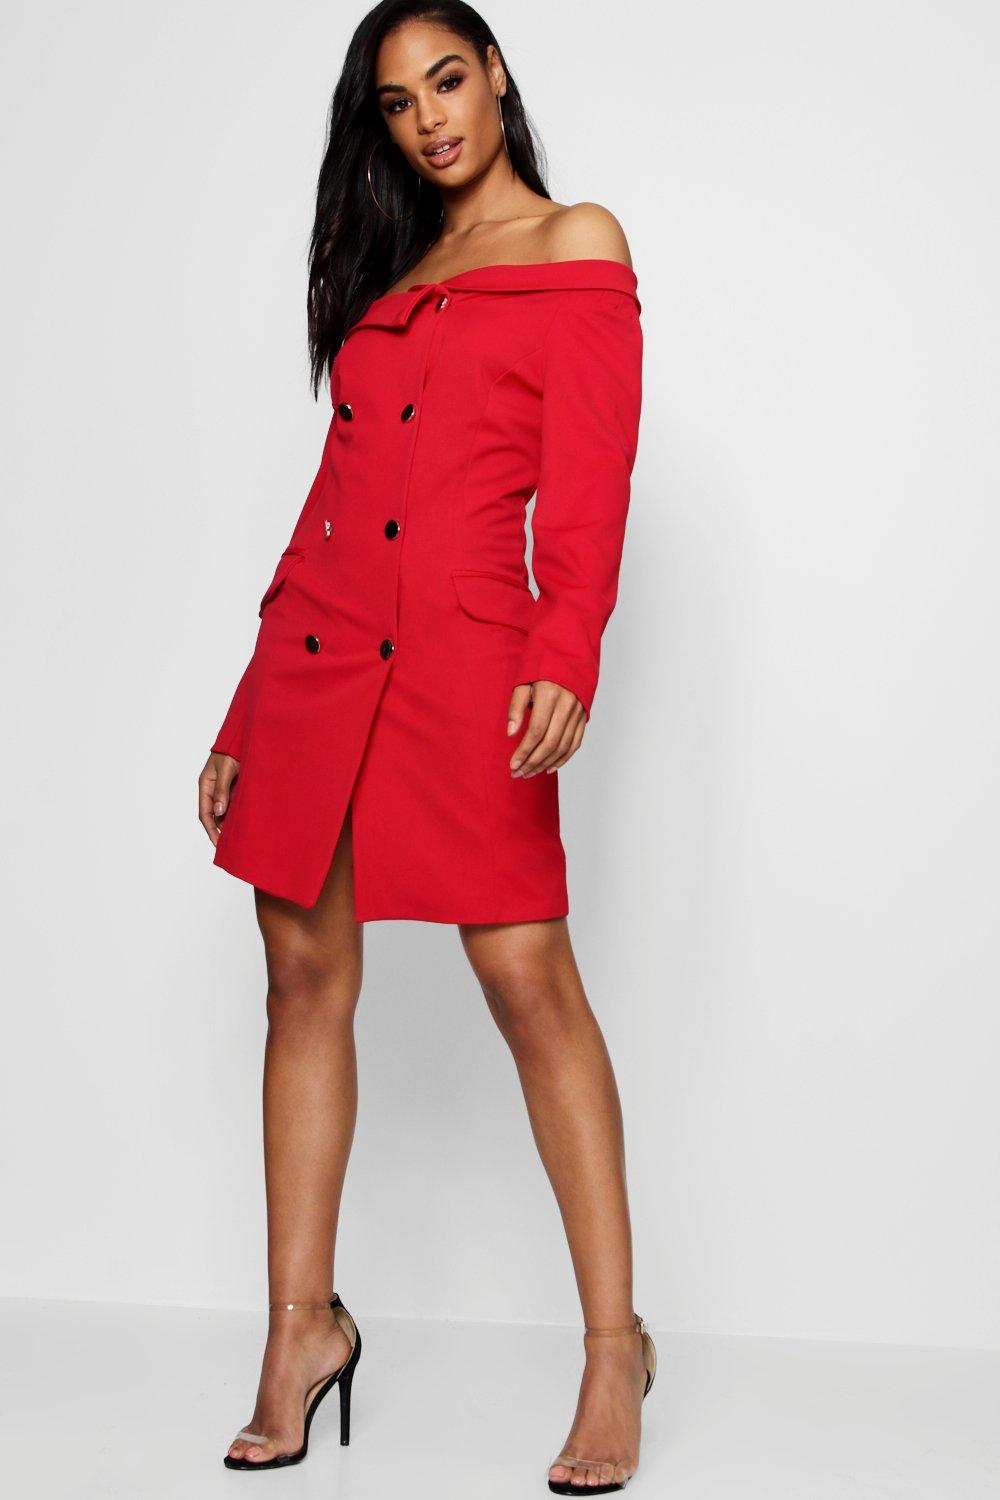 40c23fbb49a0 Double Breasted Off The Shoulder Blazer Dress. Hover to zoom